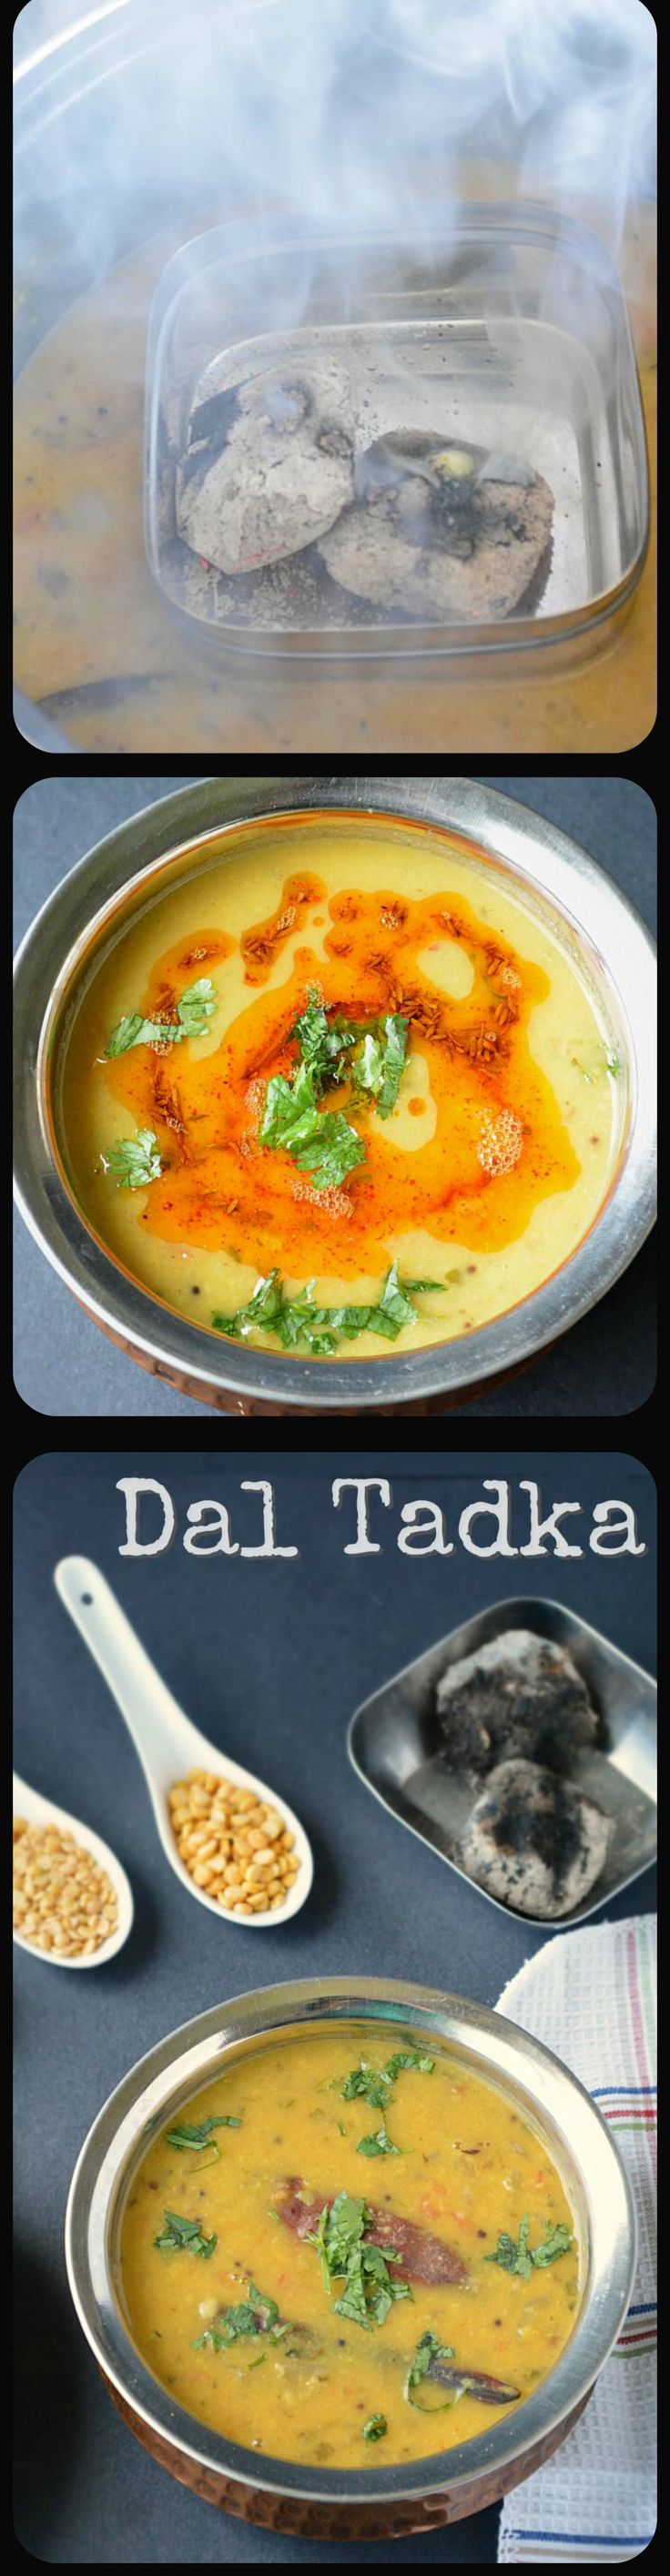 756 best curry images on pinterest indian cuisine indian yellow moong dal is boiled and cooked with onion tomatoes and aromatic spices that adds forumfinder Images